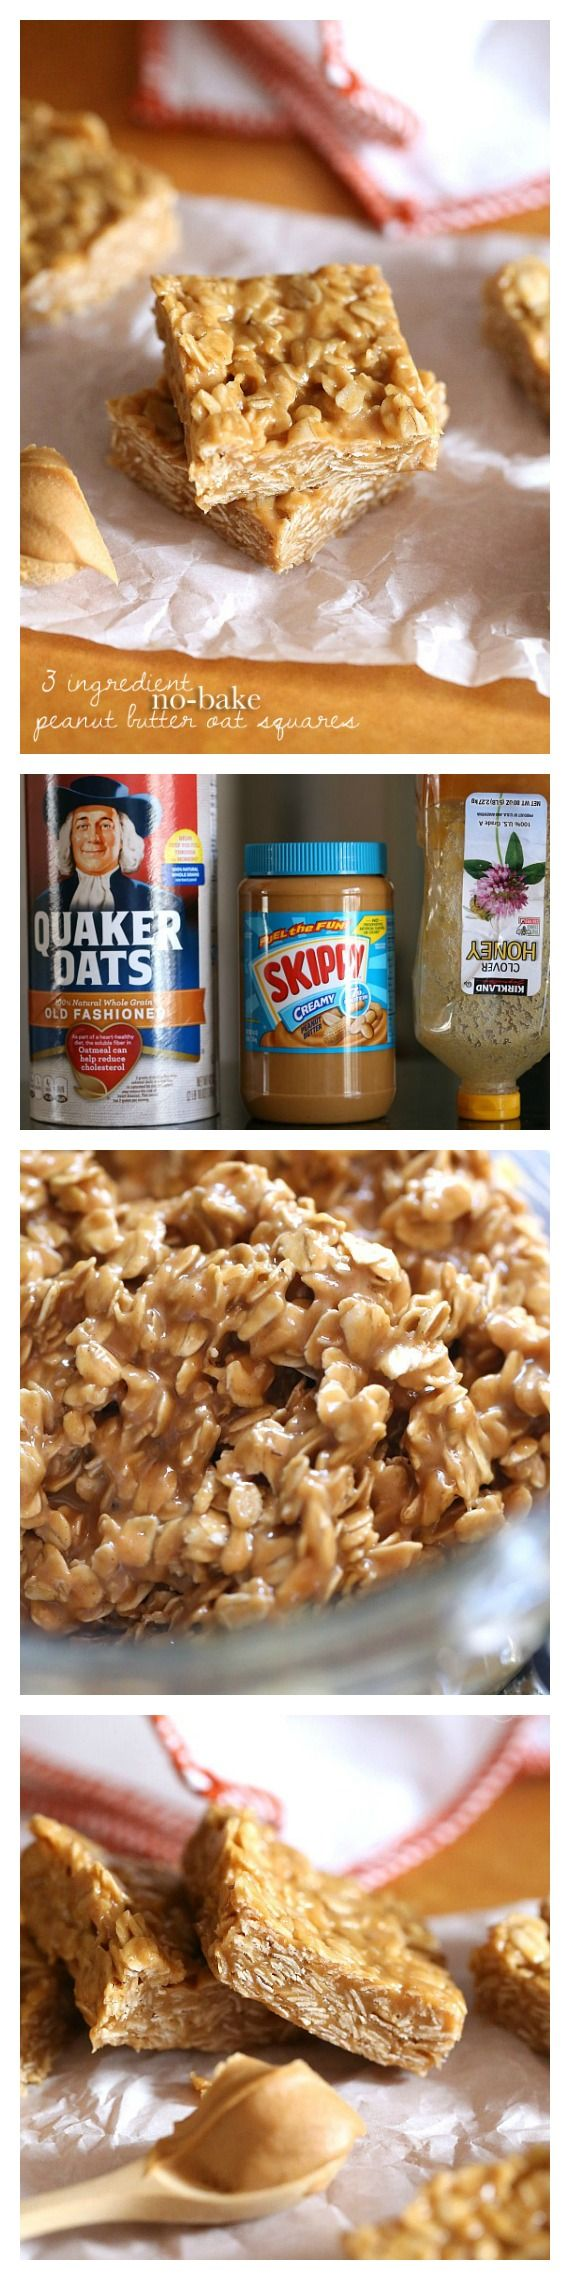 3 Ingredient No Bake Peanut Butter Oat Squares Recipe Recipes Quaker Instant Oatmeal Jar 1 Carton 12 Pcs P So Simple Only Ingredients And Sweetened With Honey Add Protein To Make Them Into Homemade Bars